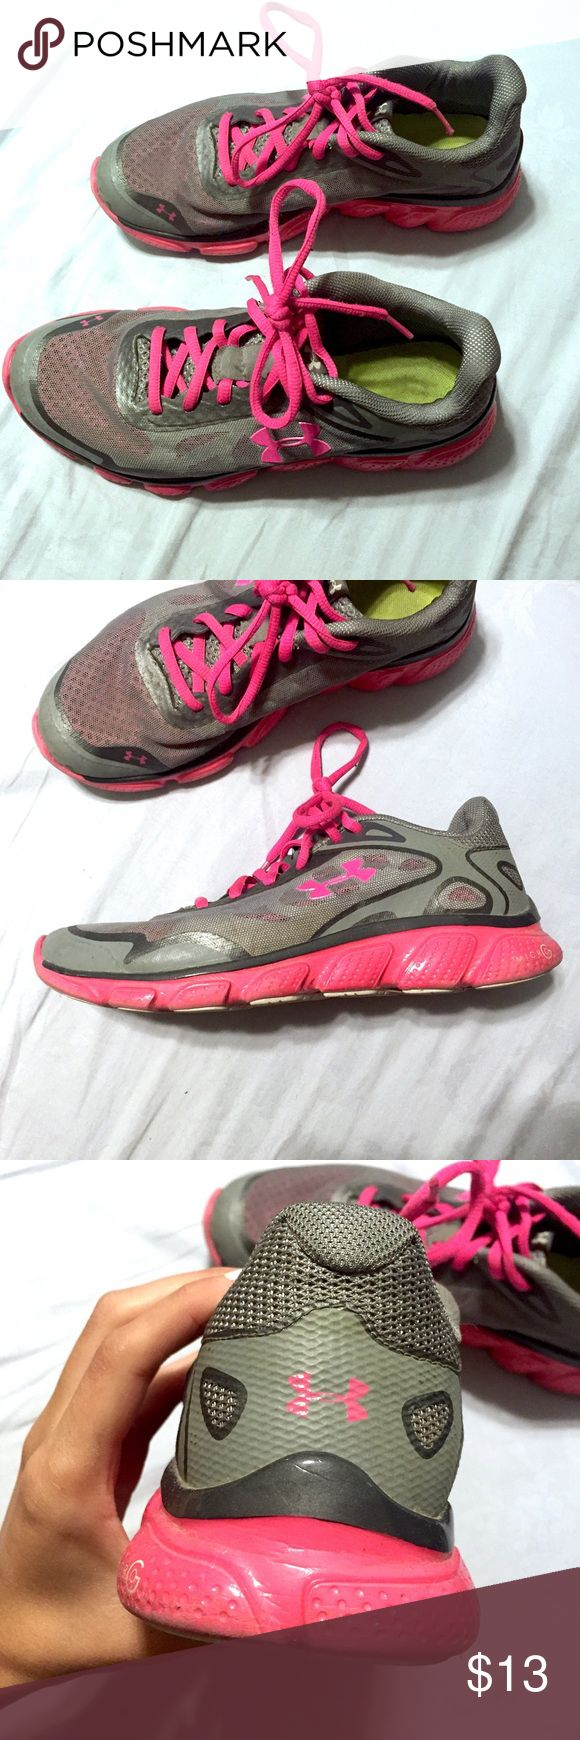 Under Armor Shoes Cute shoes that I didn't wear a lot! Less than 5 times. Good condition! Very comfortable Under Armour Shoes Athletic Shoes